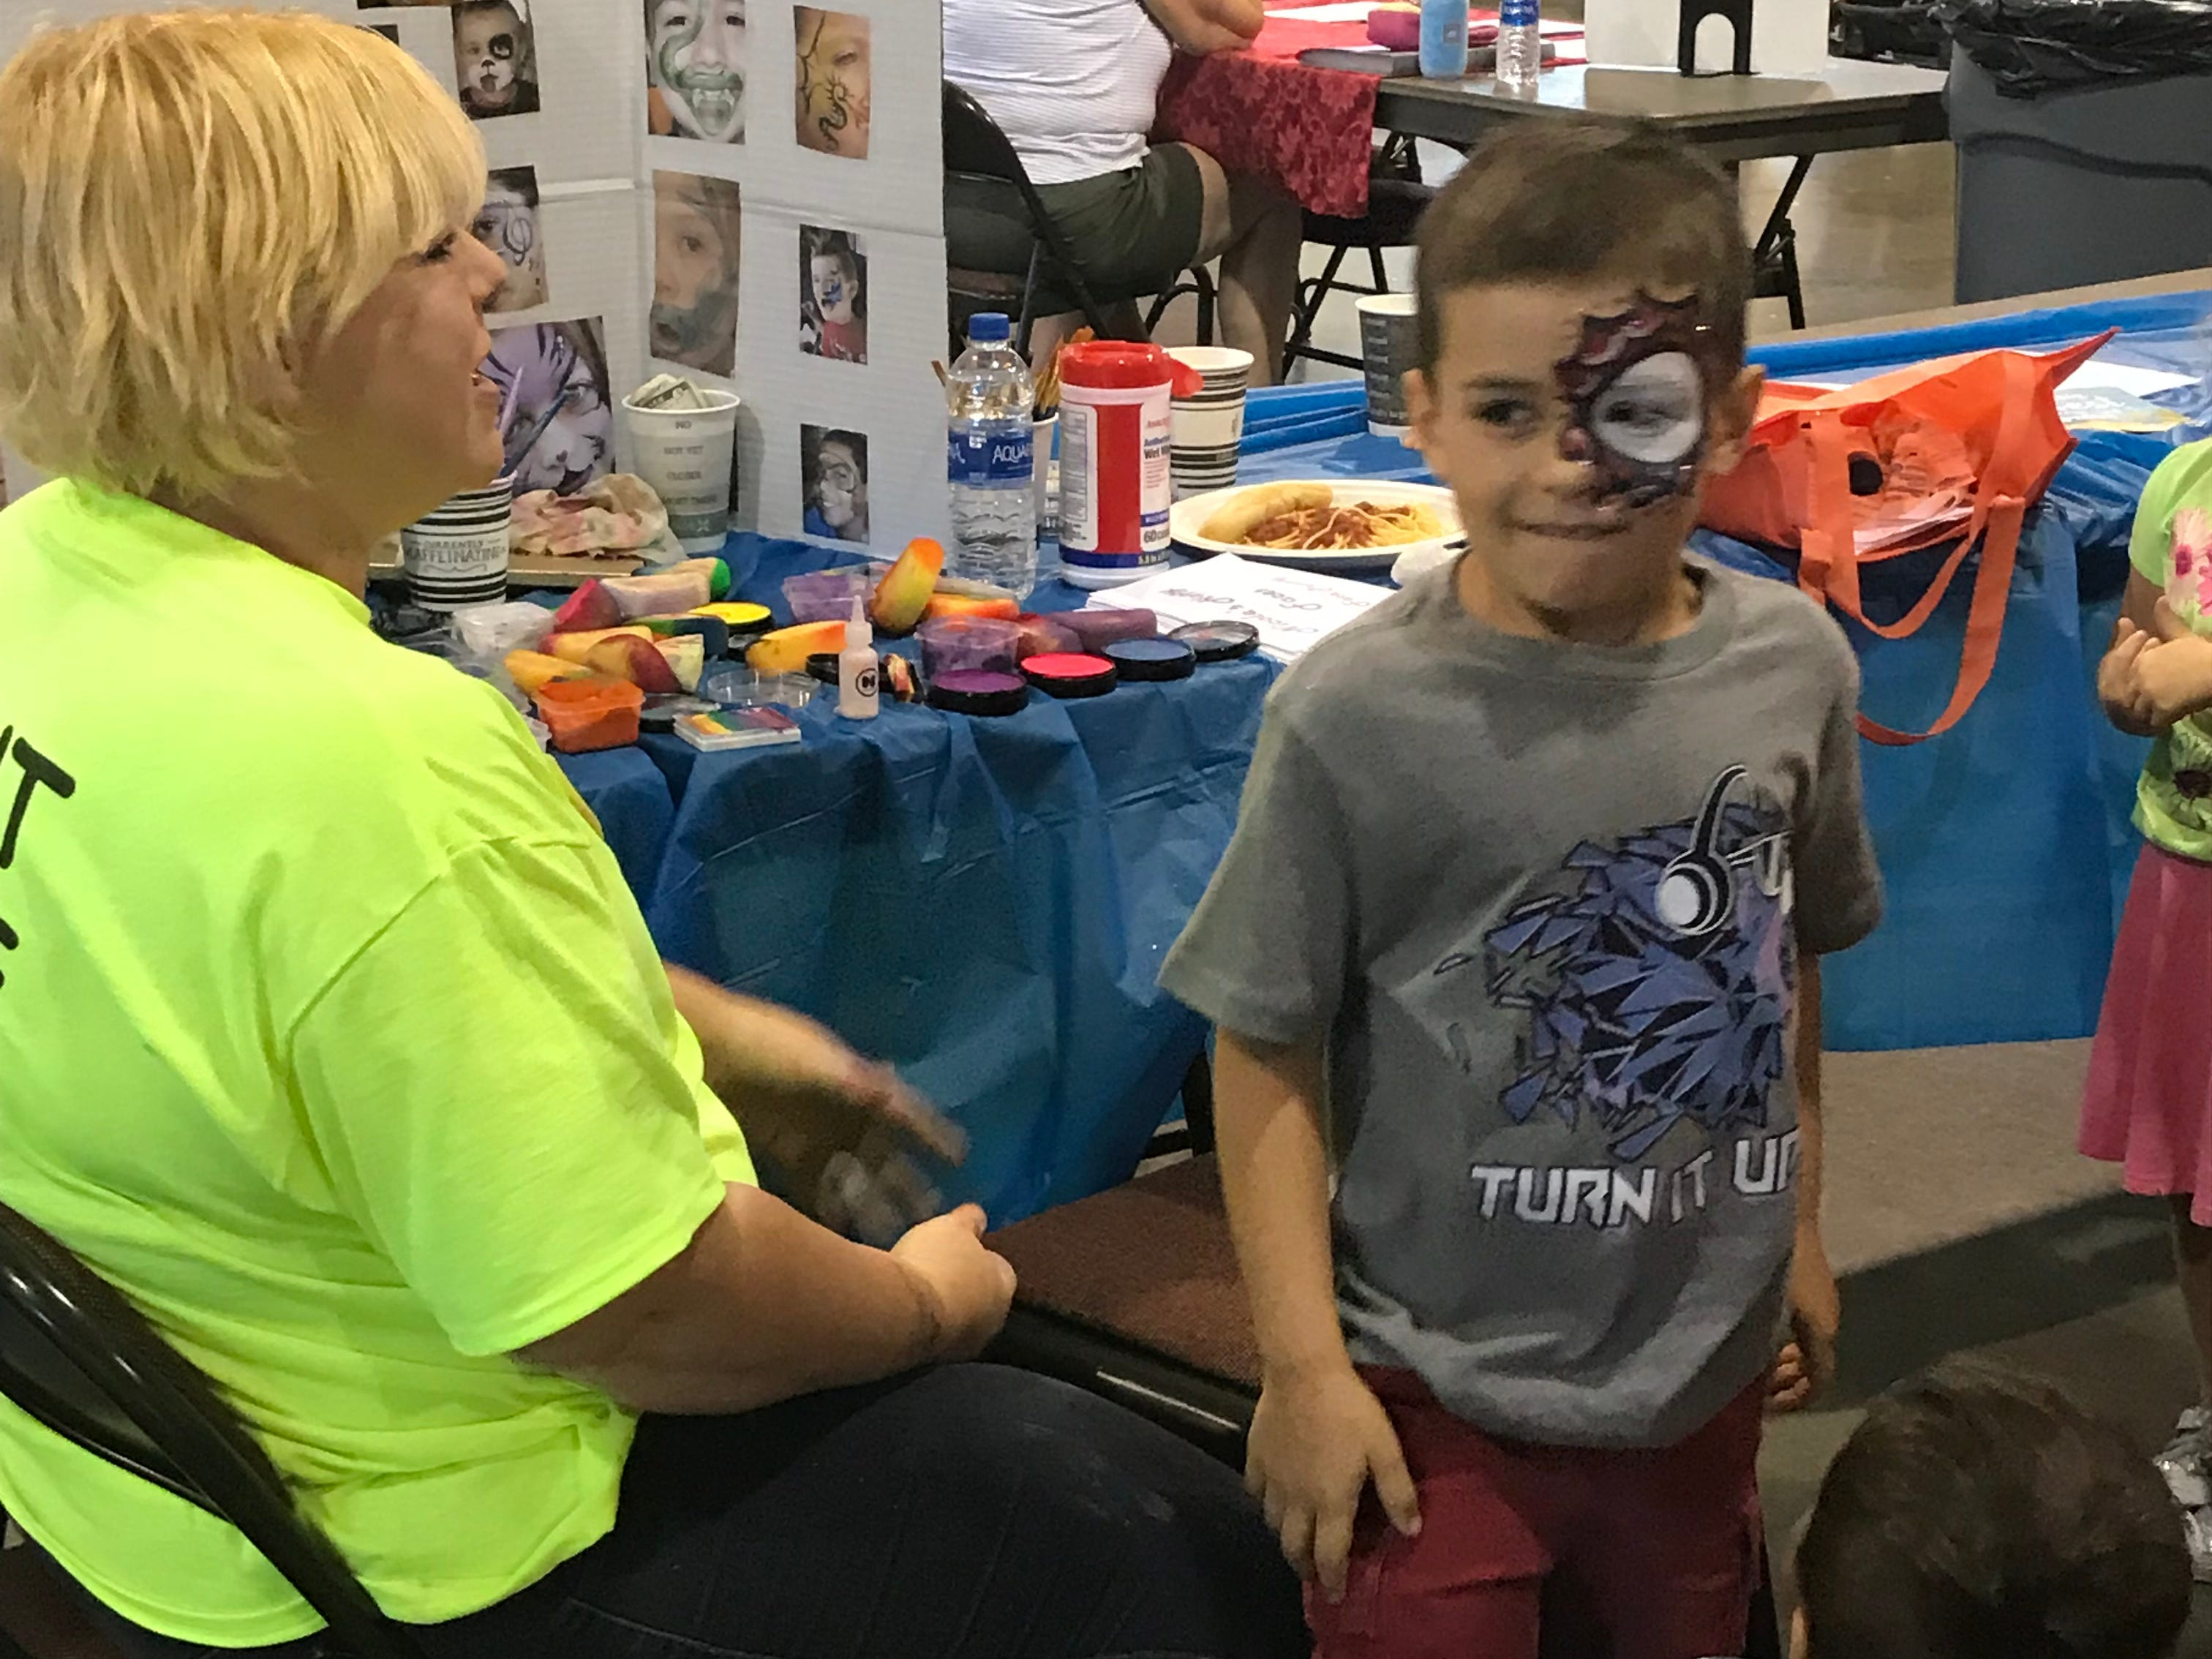 Face painting was among the activities at Touch a Truck.